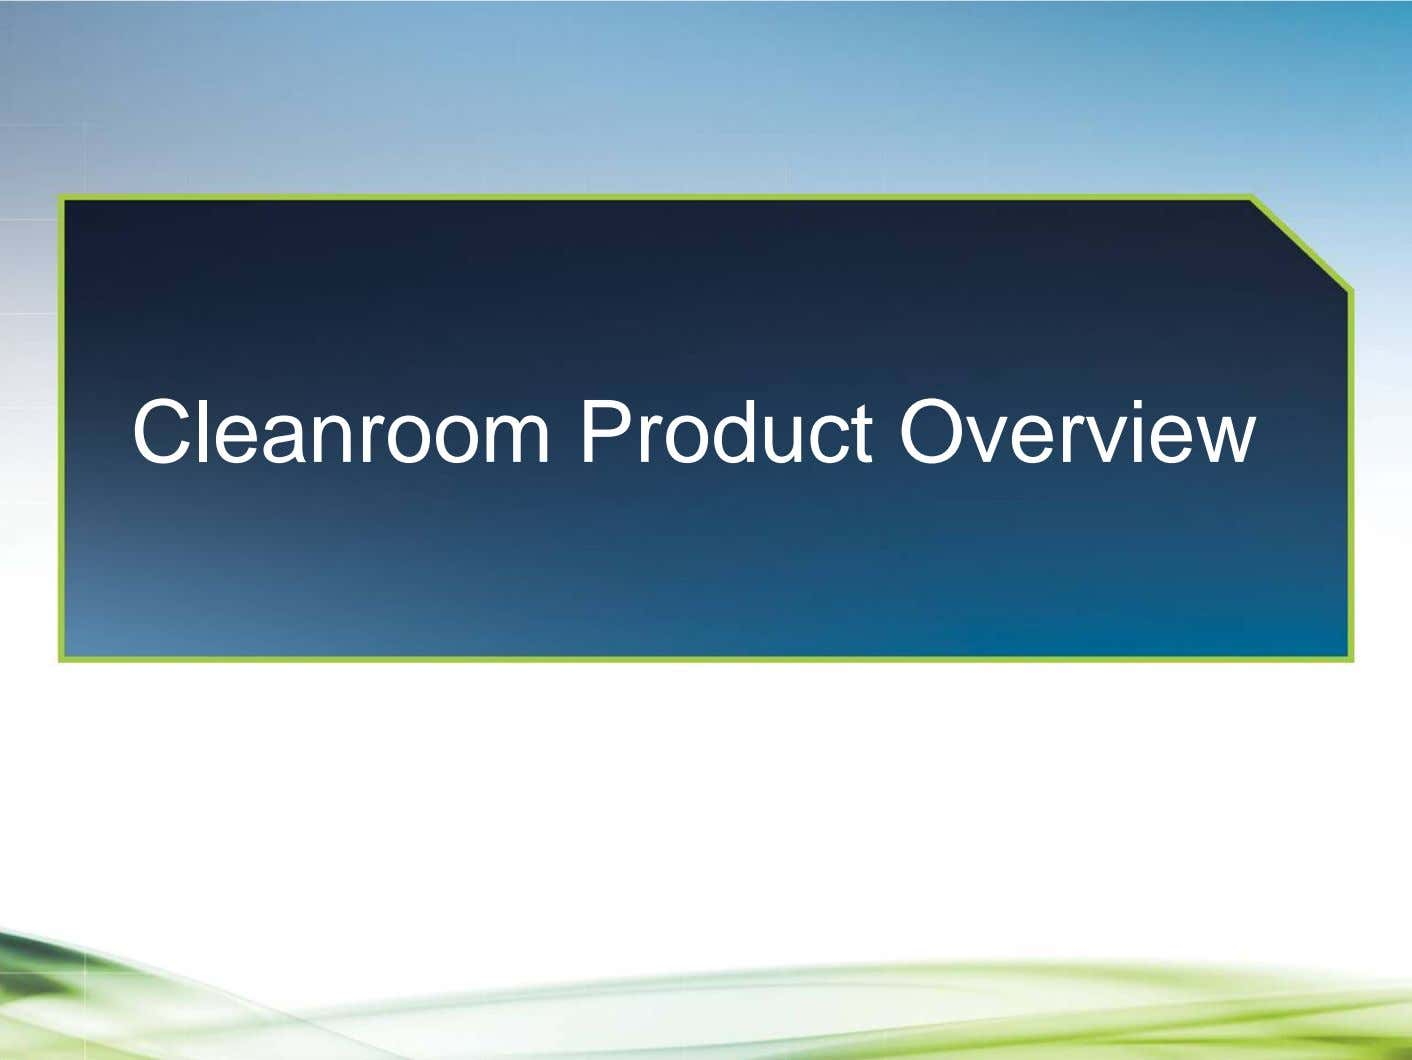 Cleanroom Product Overview